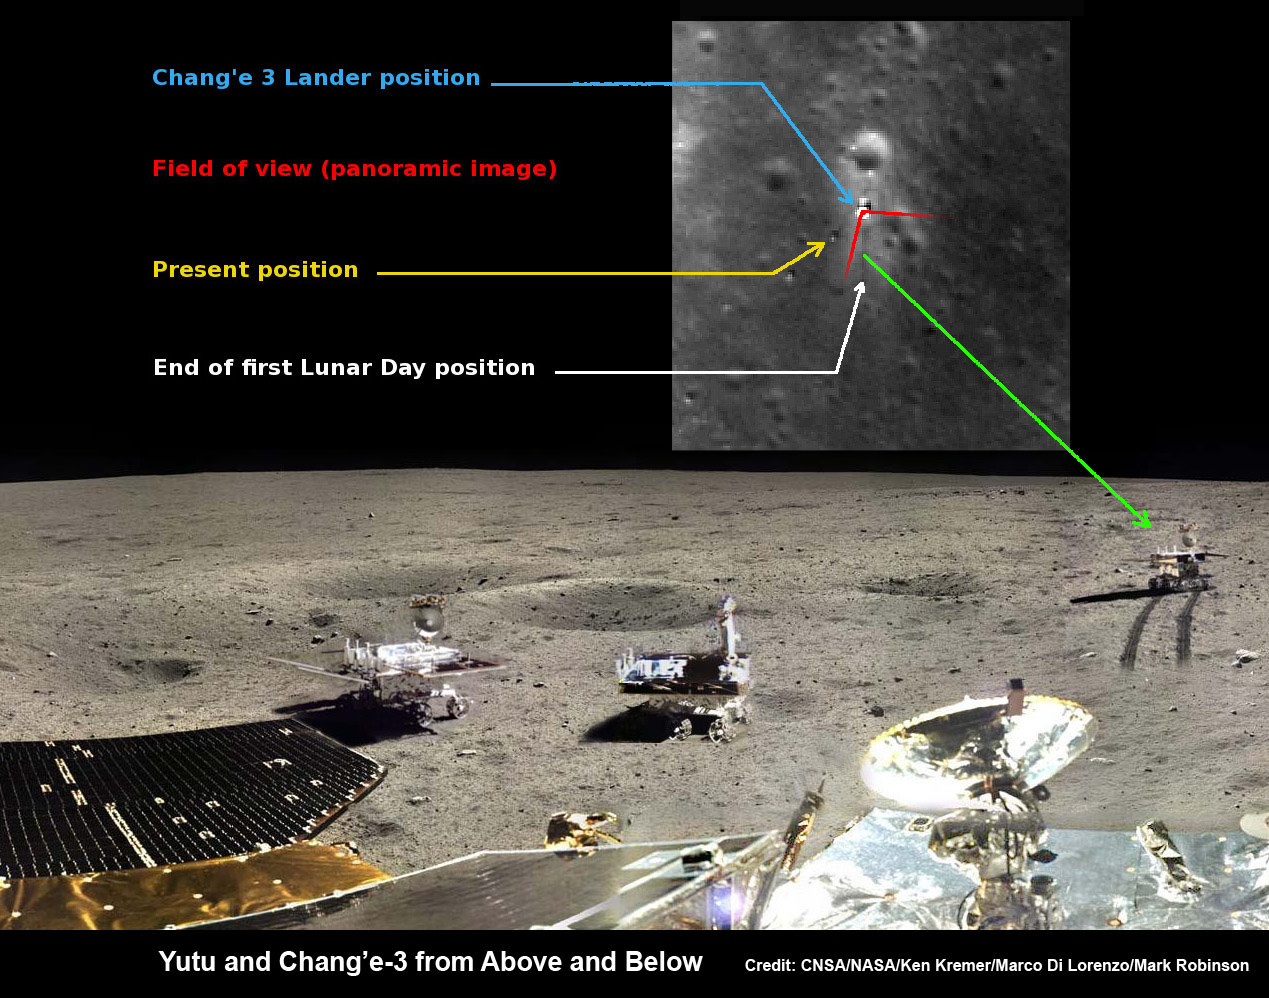 Yutu rover drives around Chang'e-3 lander  – from Above And Below. Composite view shows China's Yutu rover and tracks driving in clockwise direction around Chang'e-3 lander from Above And Below (orbit and surface).  The Chang'e-3 timelapse lander color panorama (bottom) and orbital view (top) from NASA's LRO orbiter shows Yutu rover after it drove down the ramp to the moon's surface and began driving around the landers right side, passing by craters and heading south on Lunar Day 1.   It then moved northwest during Lunar Day 2.  Arrows show Yutu's positions over time.    Credit: CNSA/NASA/Ken Kremer/Marco Di Lorenzo/Mark Robinson